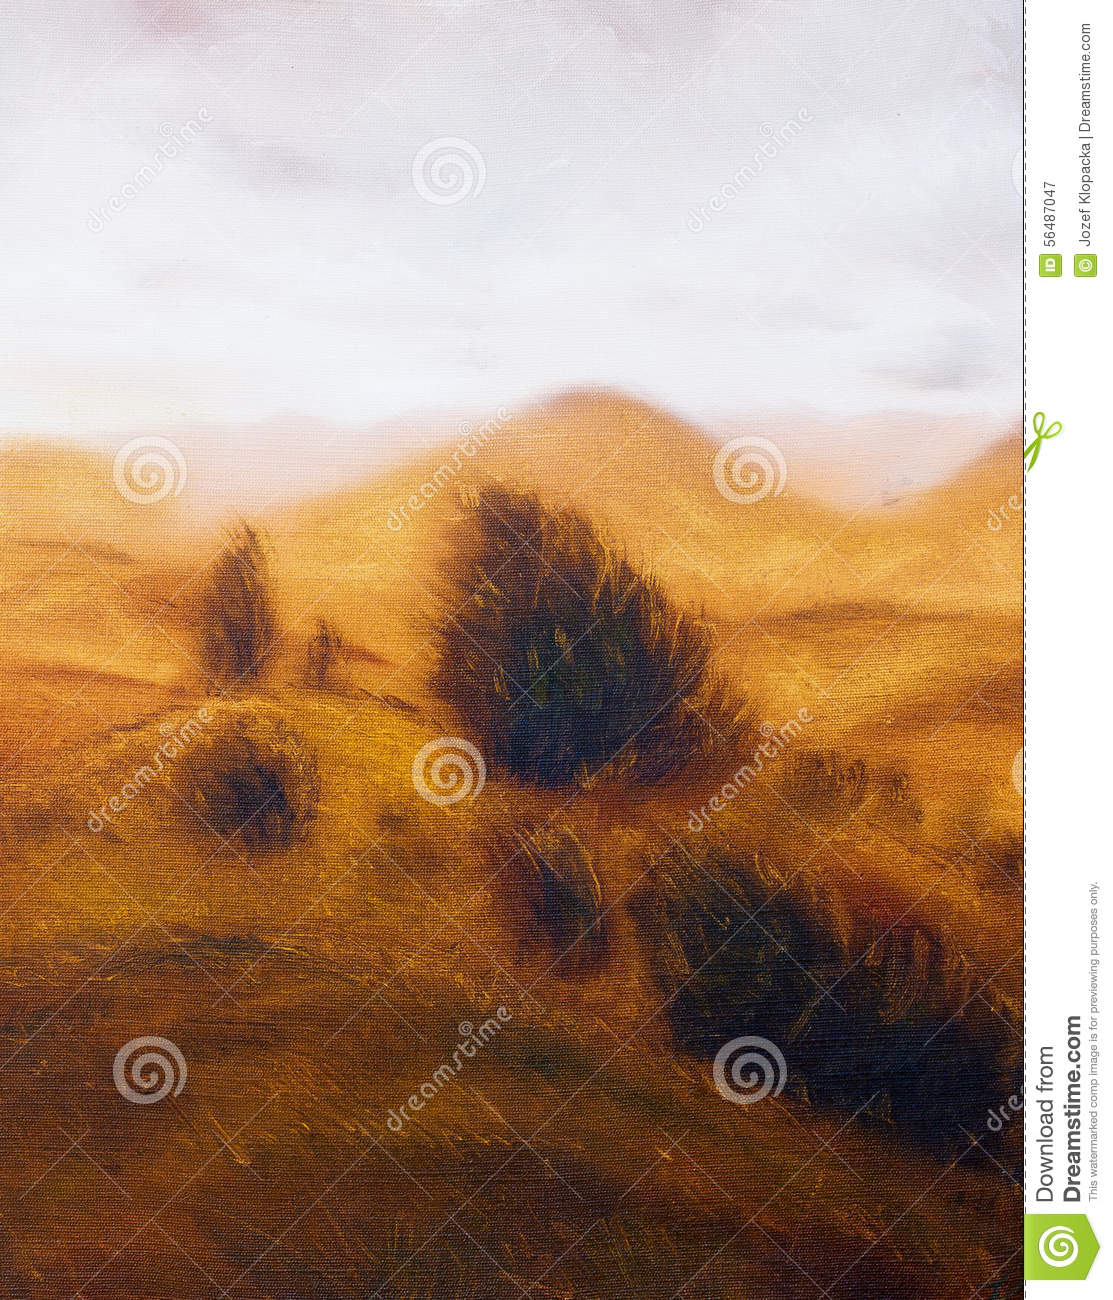 Landscape painting. Miscellaneous and trees. Mountains in the background